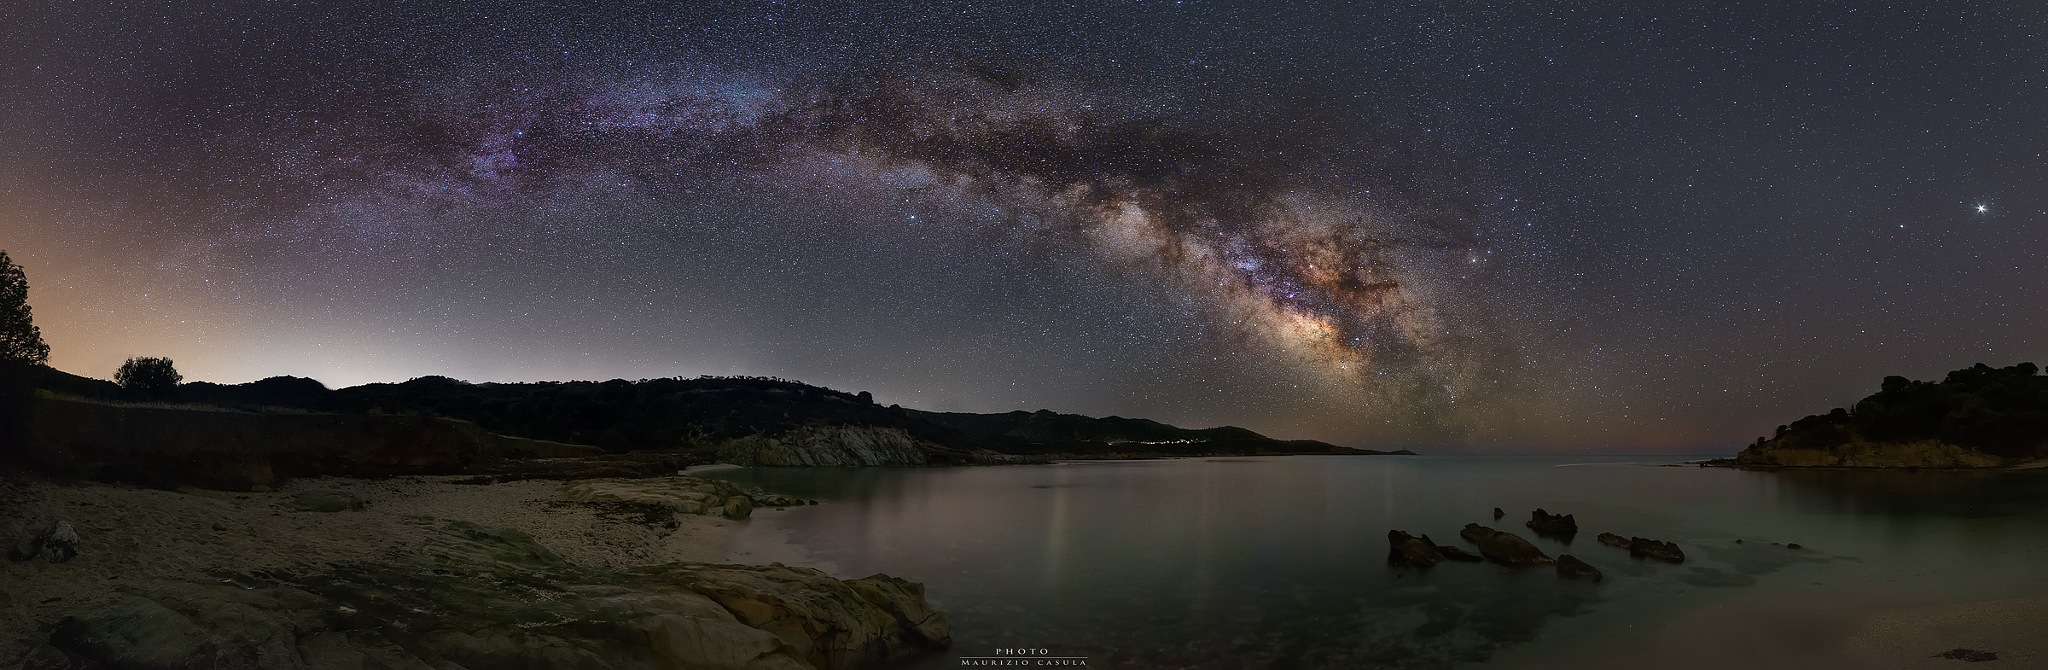 The beautiful arch of the Milky Way by Maurizio Casula